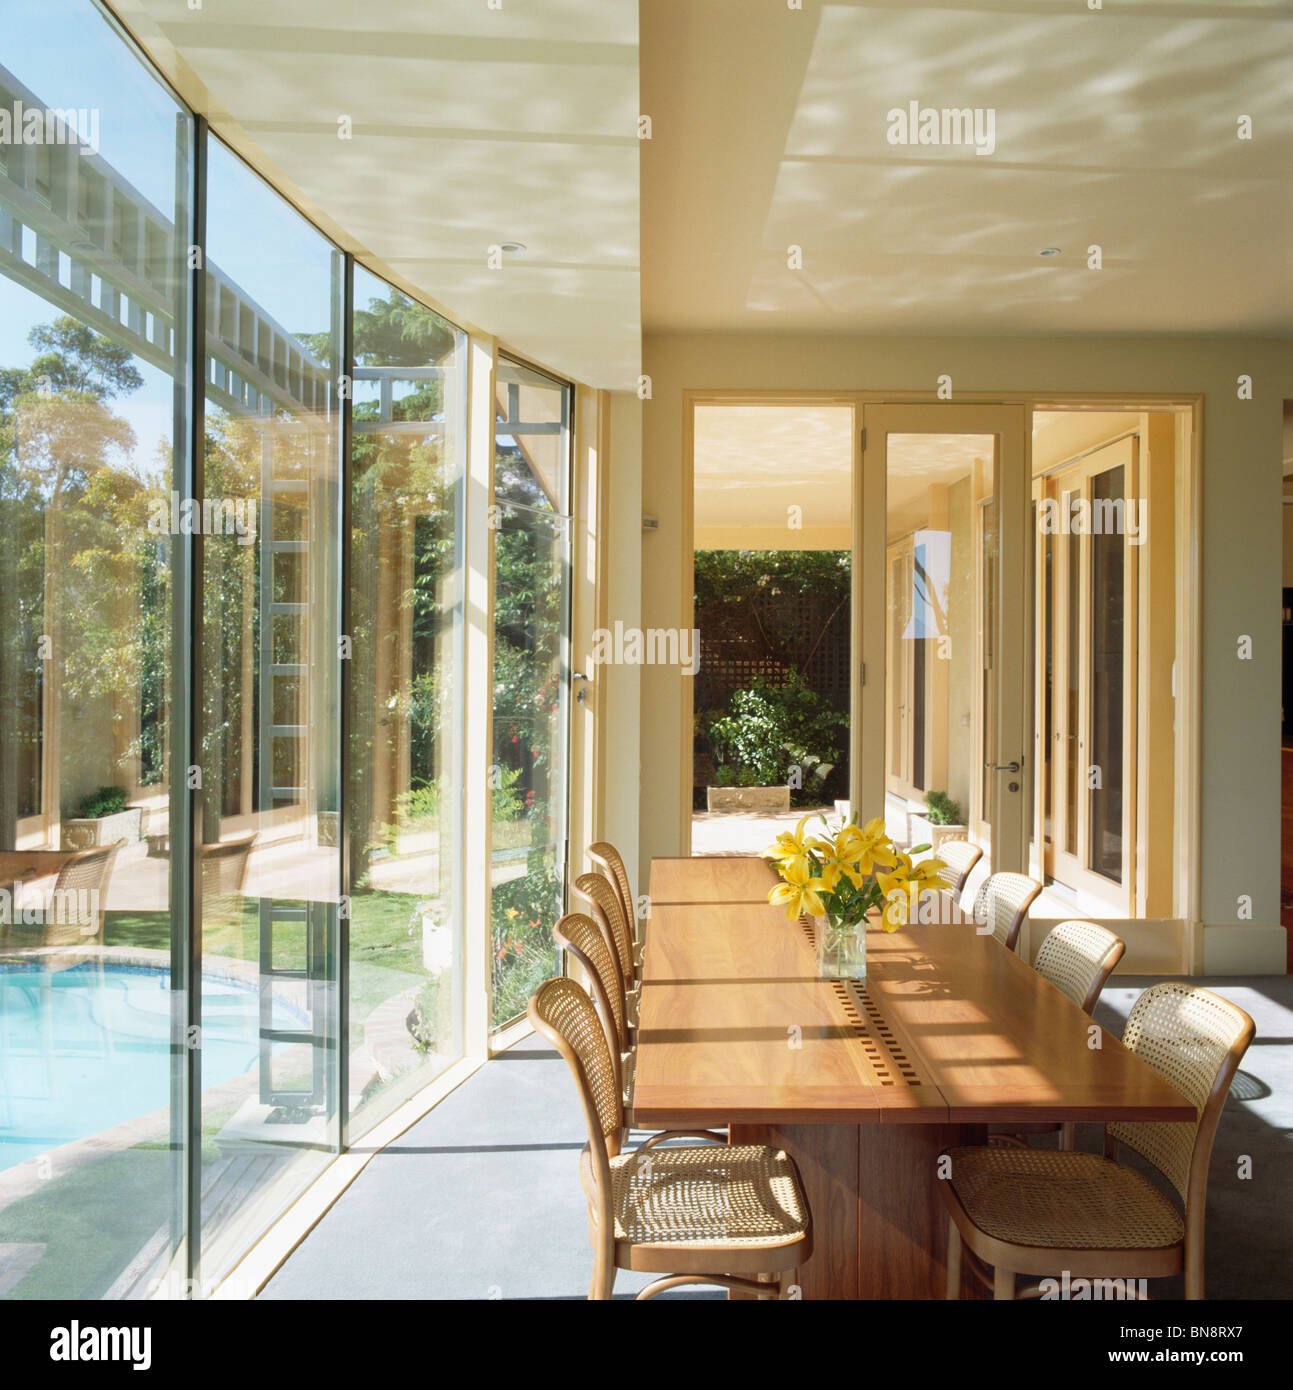 Wooden Table In Large Modern Dining Room Extension With Glass Wall And View Of Swimming Pool